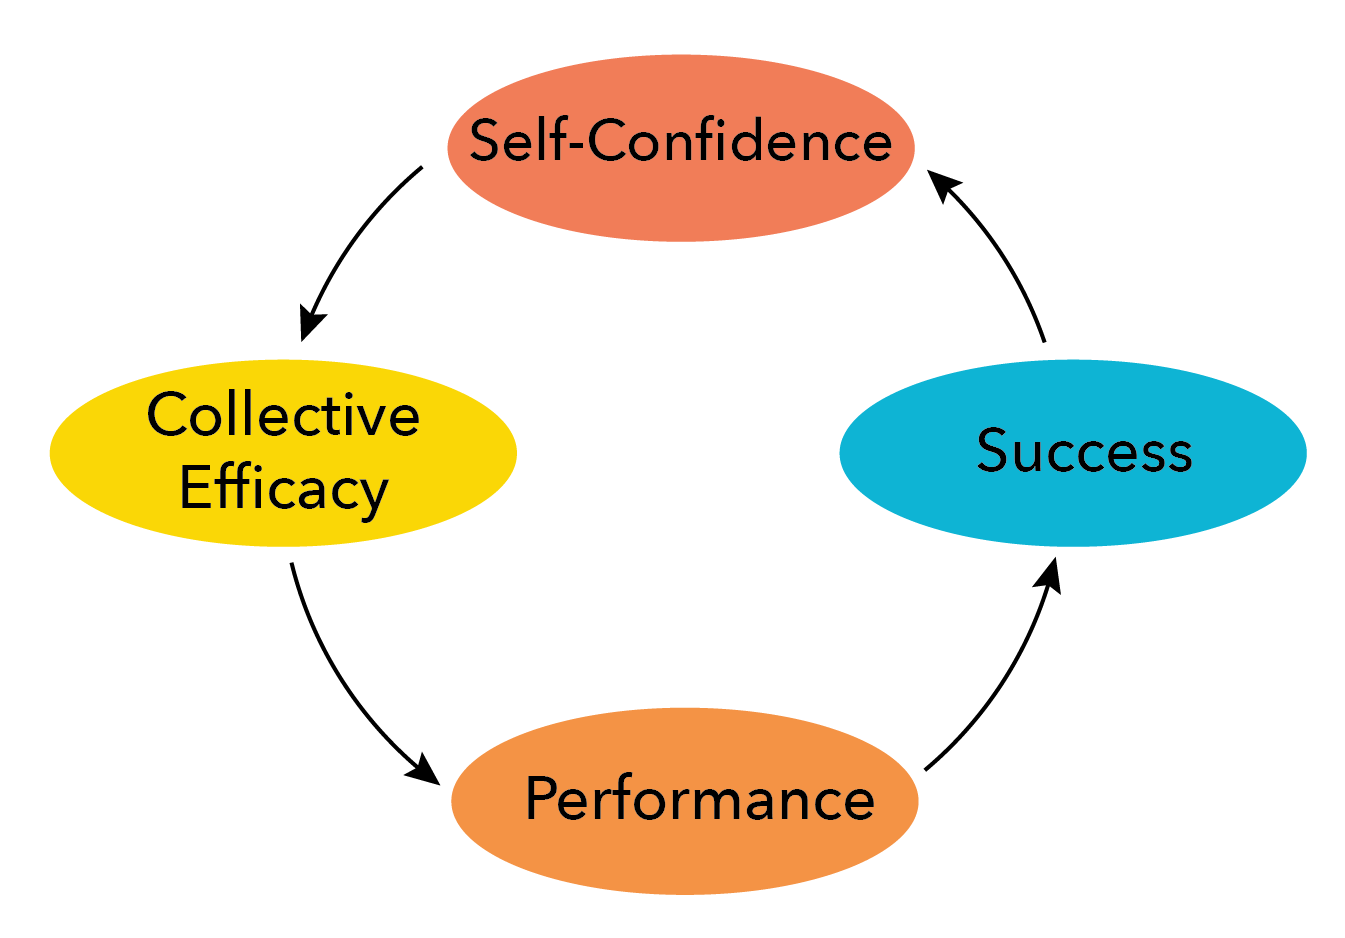 The terms collective efficacy, performance, success, and self-confidence connected by arrows in a circle